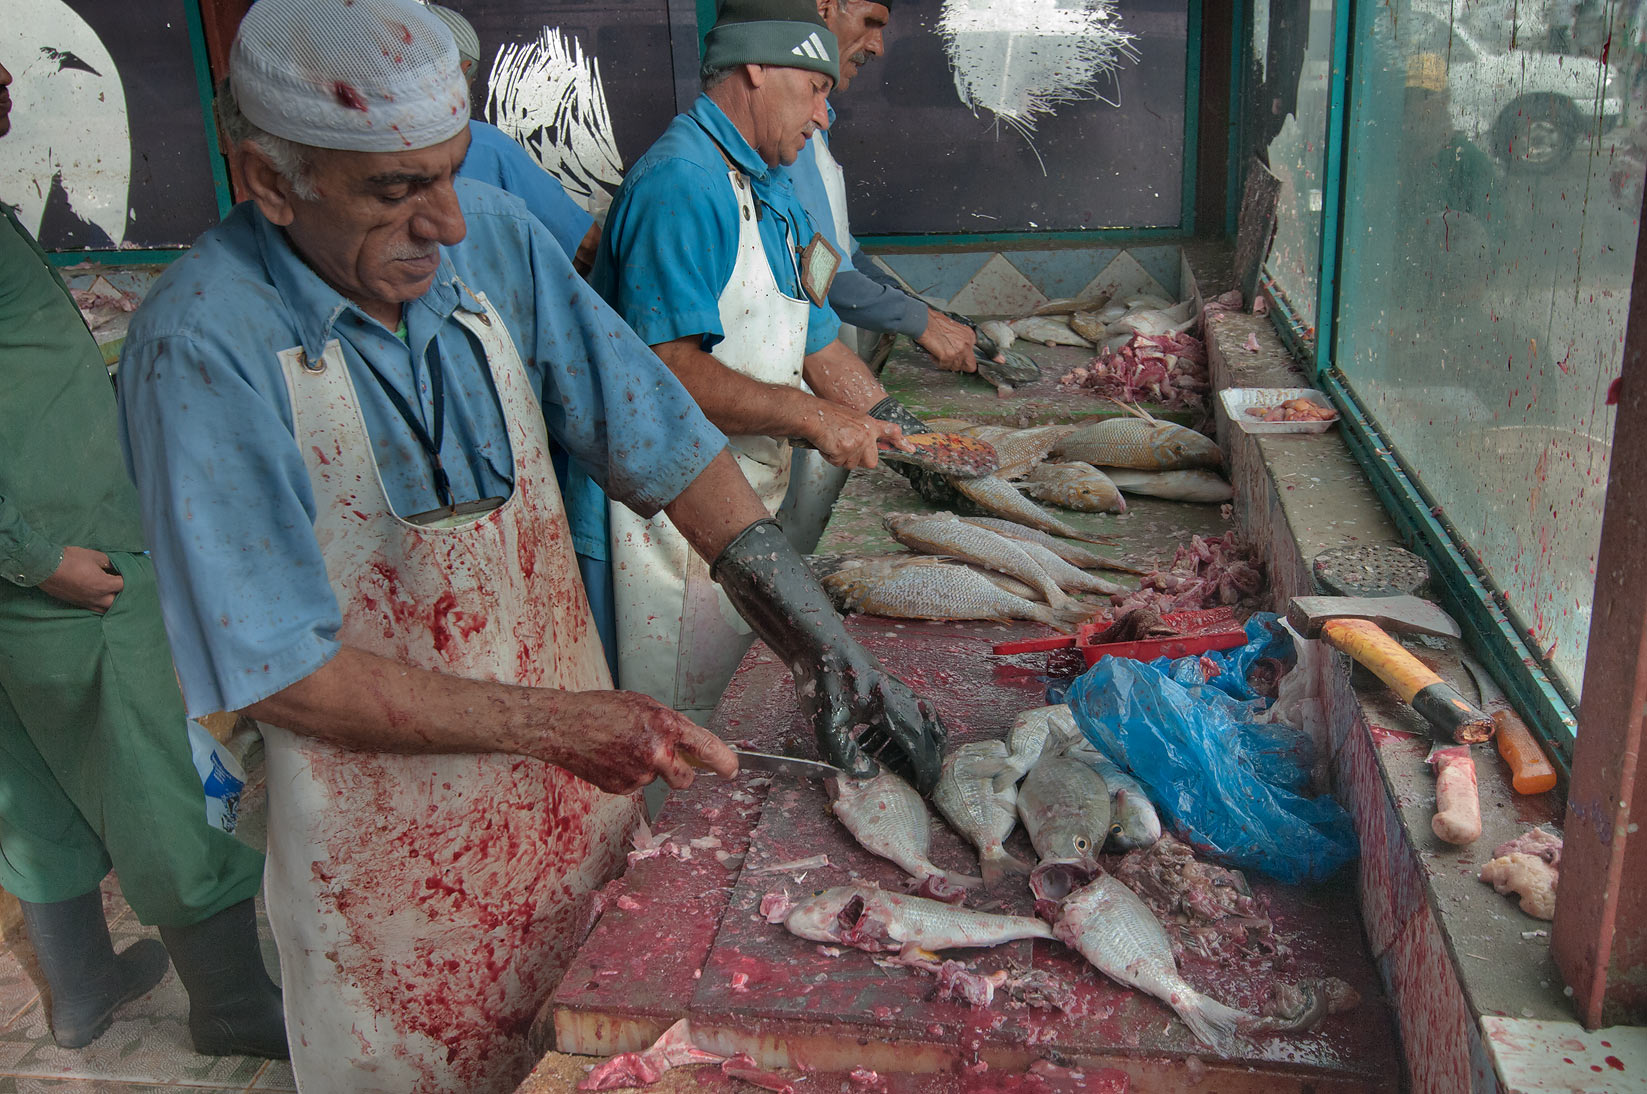 Cleaning fish in Fish Market, Wholesale Markets area. Doha, Qatar